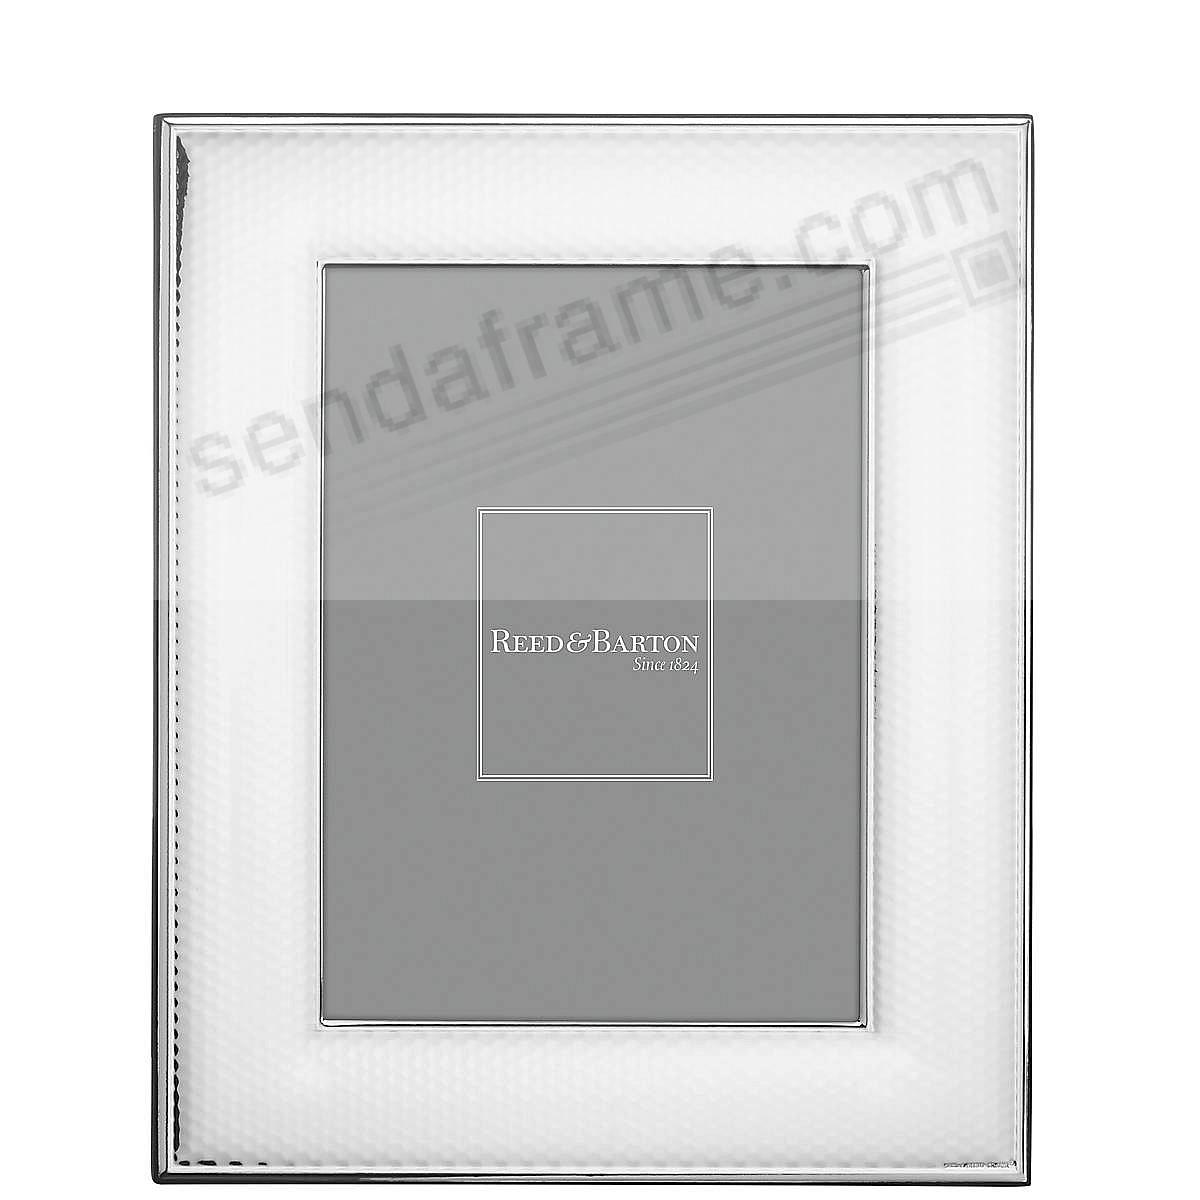 ABRUZZO Silverplate 4x6 frame by Reed & Barton®